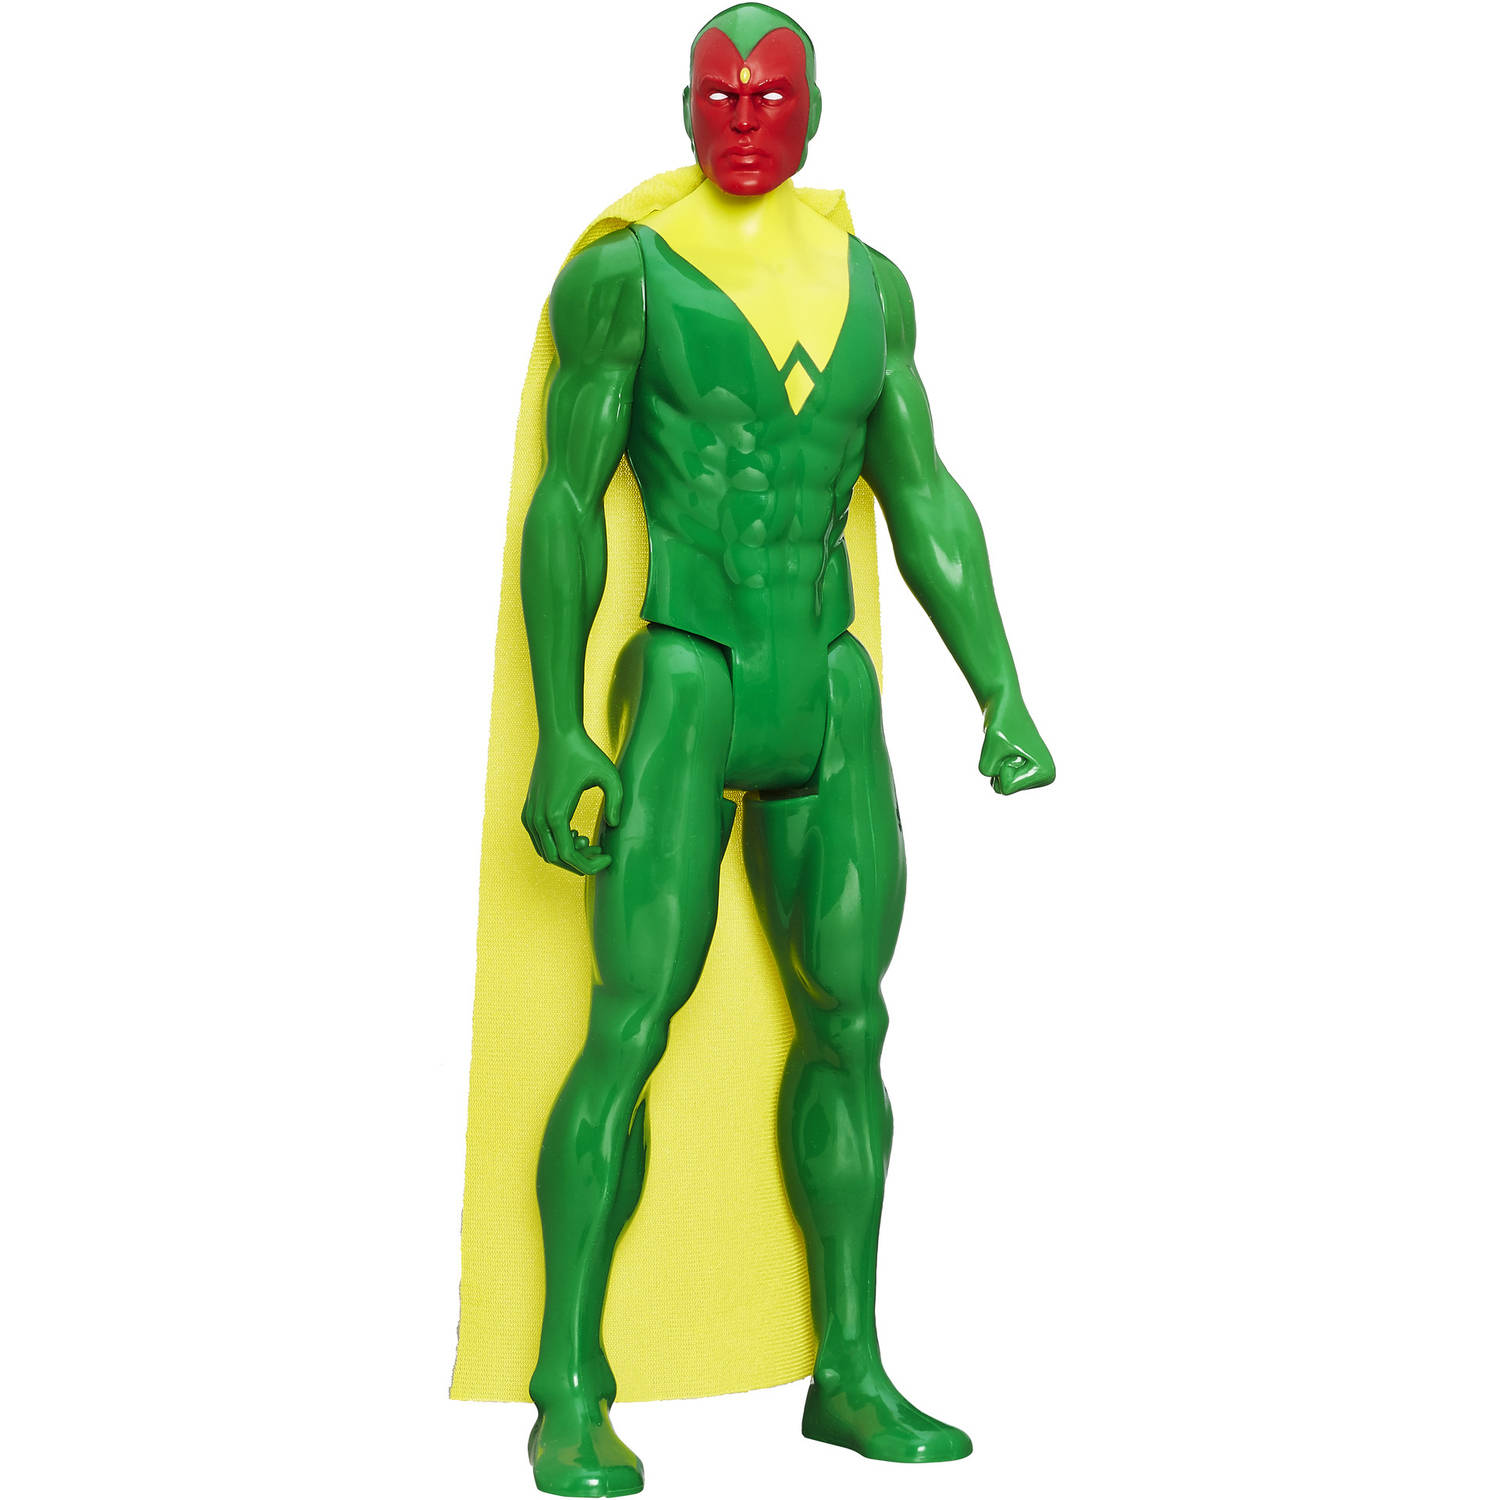 Marvel Titan Hero Series Marvel's Vision